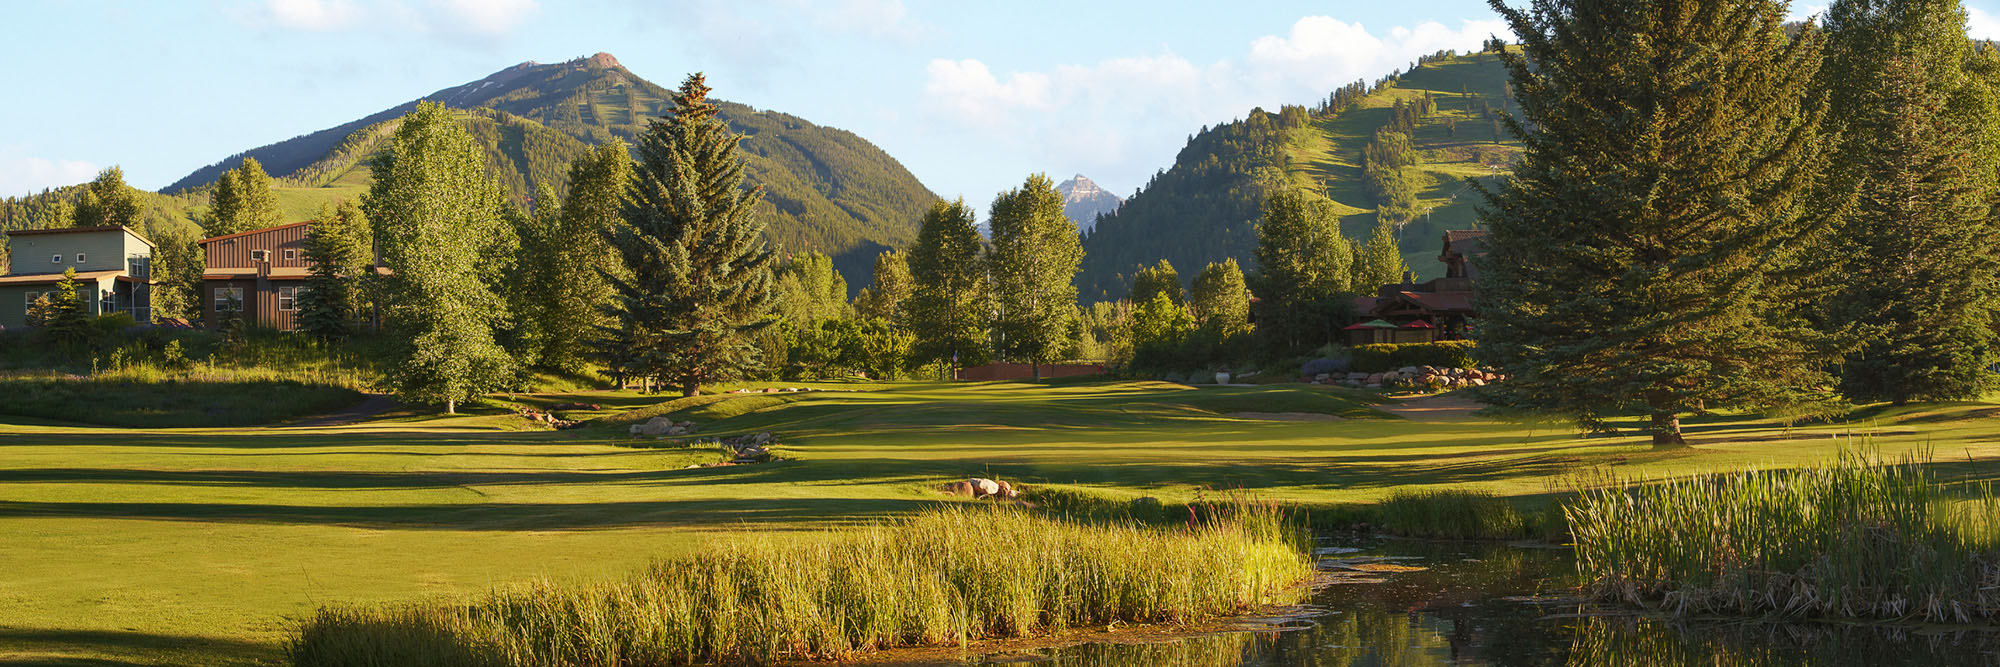 Golf Course Image - Aspen Golf Course No. 18